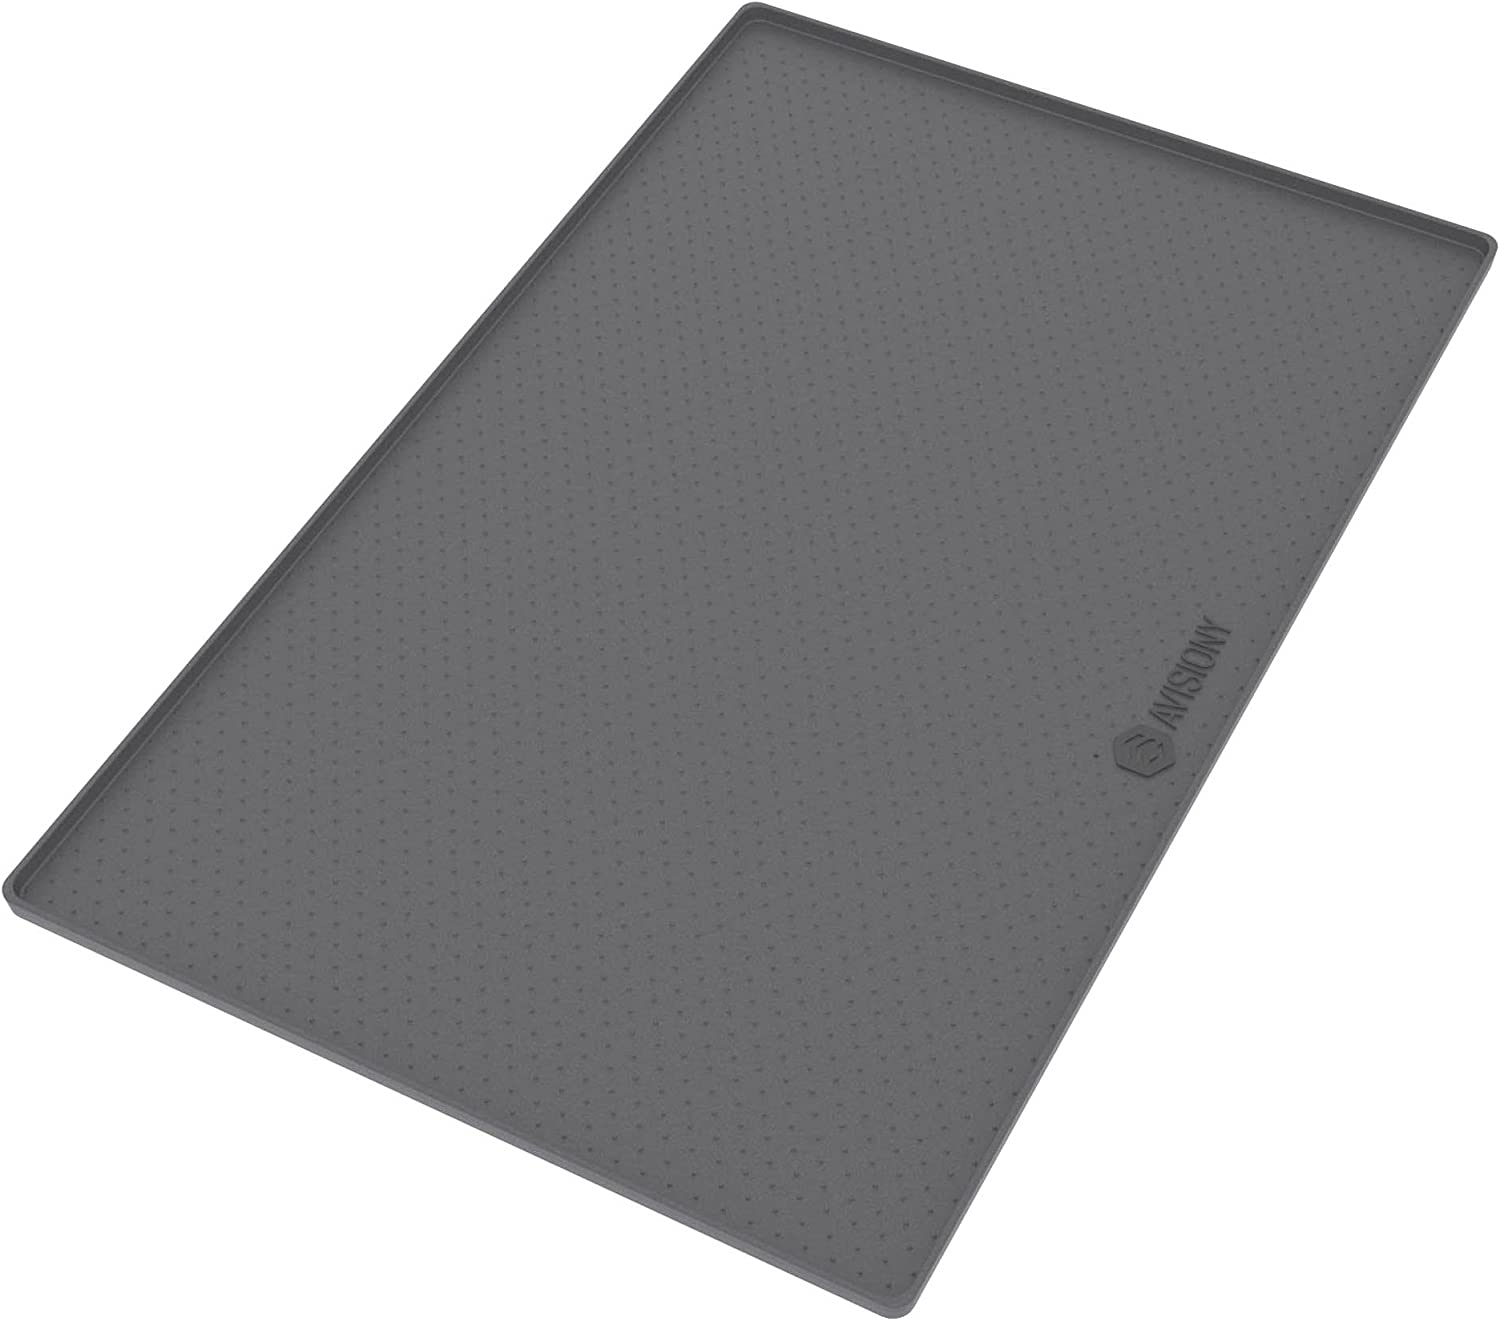 "Pet Mats for Dogs - Dog Mat - Pet Food Mat , Ideal Size 22"" x 14"" - Waterproof Silicone - Mat for Food Bowls Placemats + eBook with Dog / Cat Training Tips and Healthy Recipes by Avisiony"